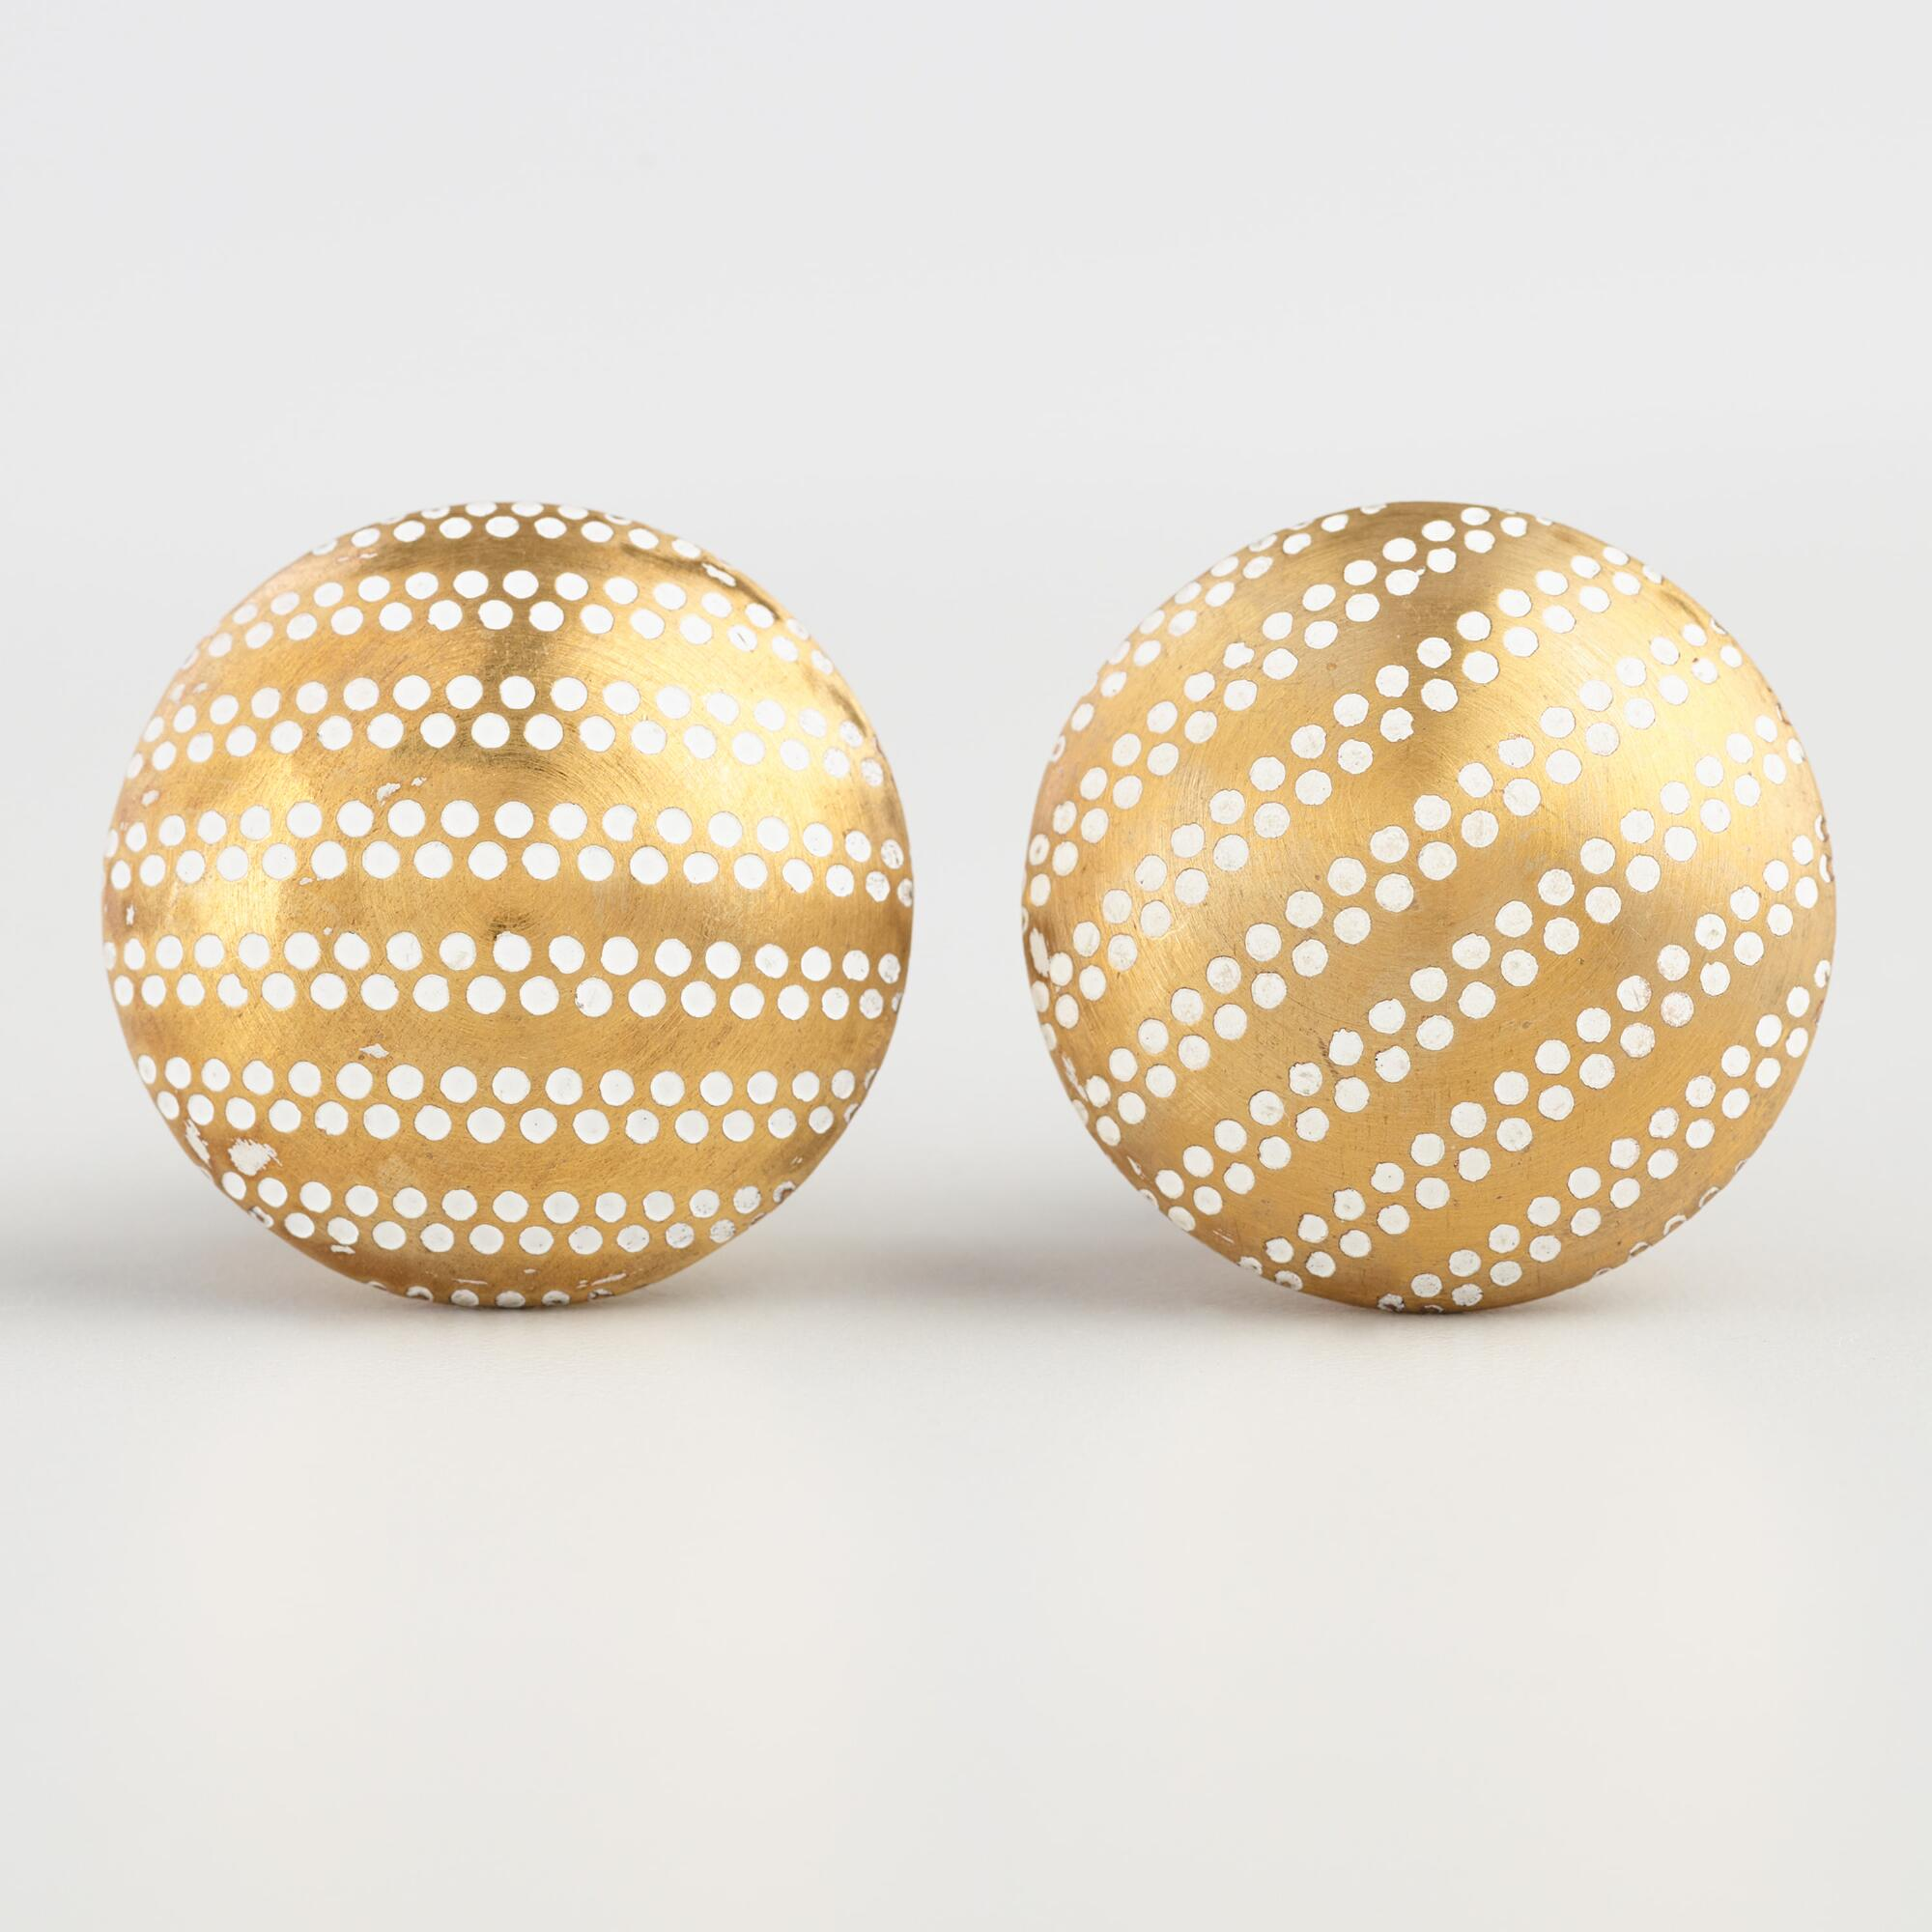 White and Brass Polka Dot Knobs Set of 2 by World Market